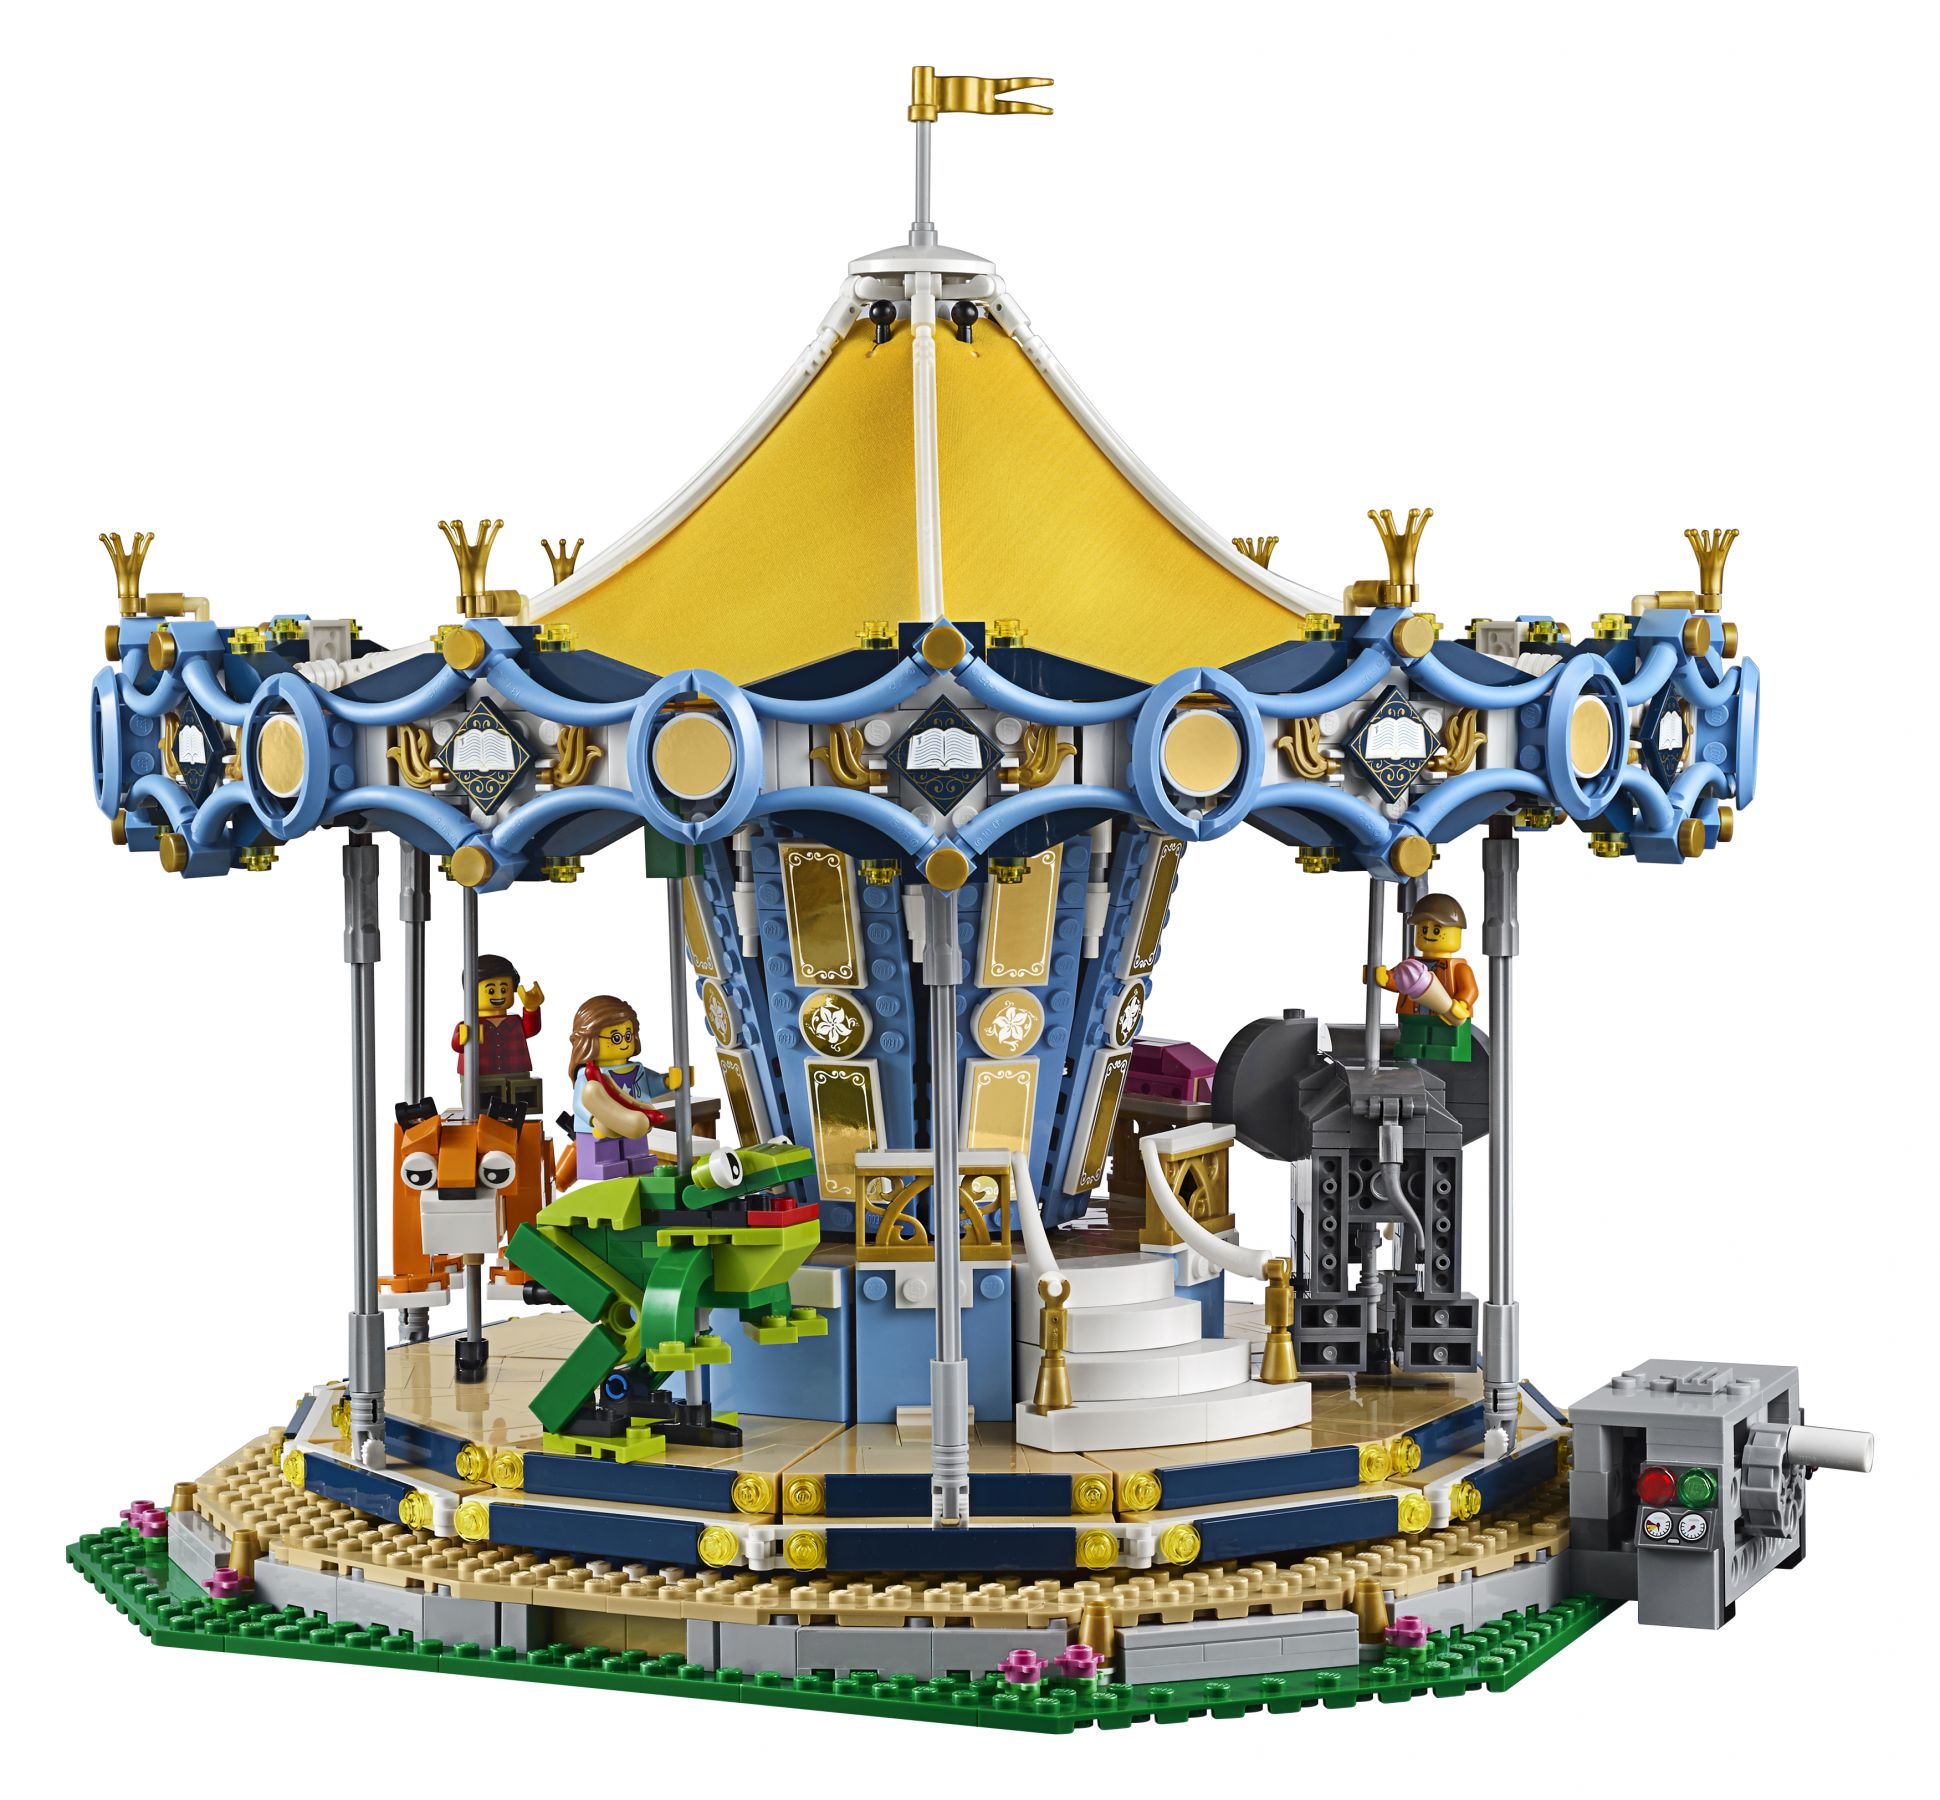 LEGO Advanced Models 10257 Karussell LEGO_10257_Fairground_Carousel_Back_01.jpg